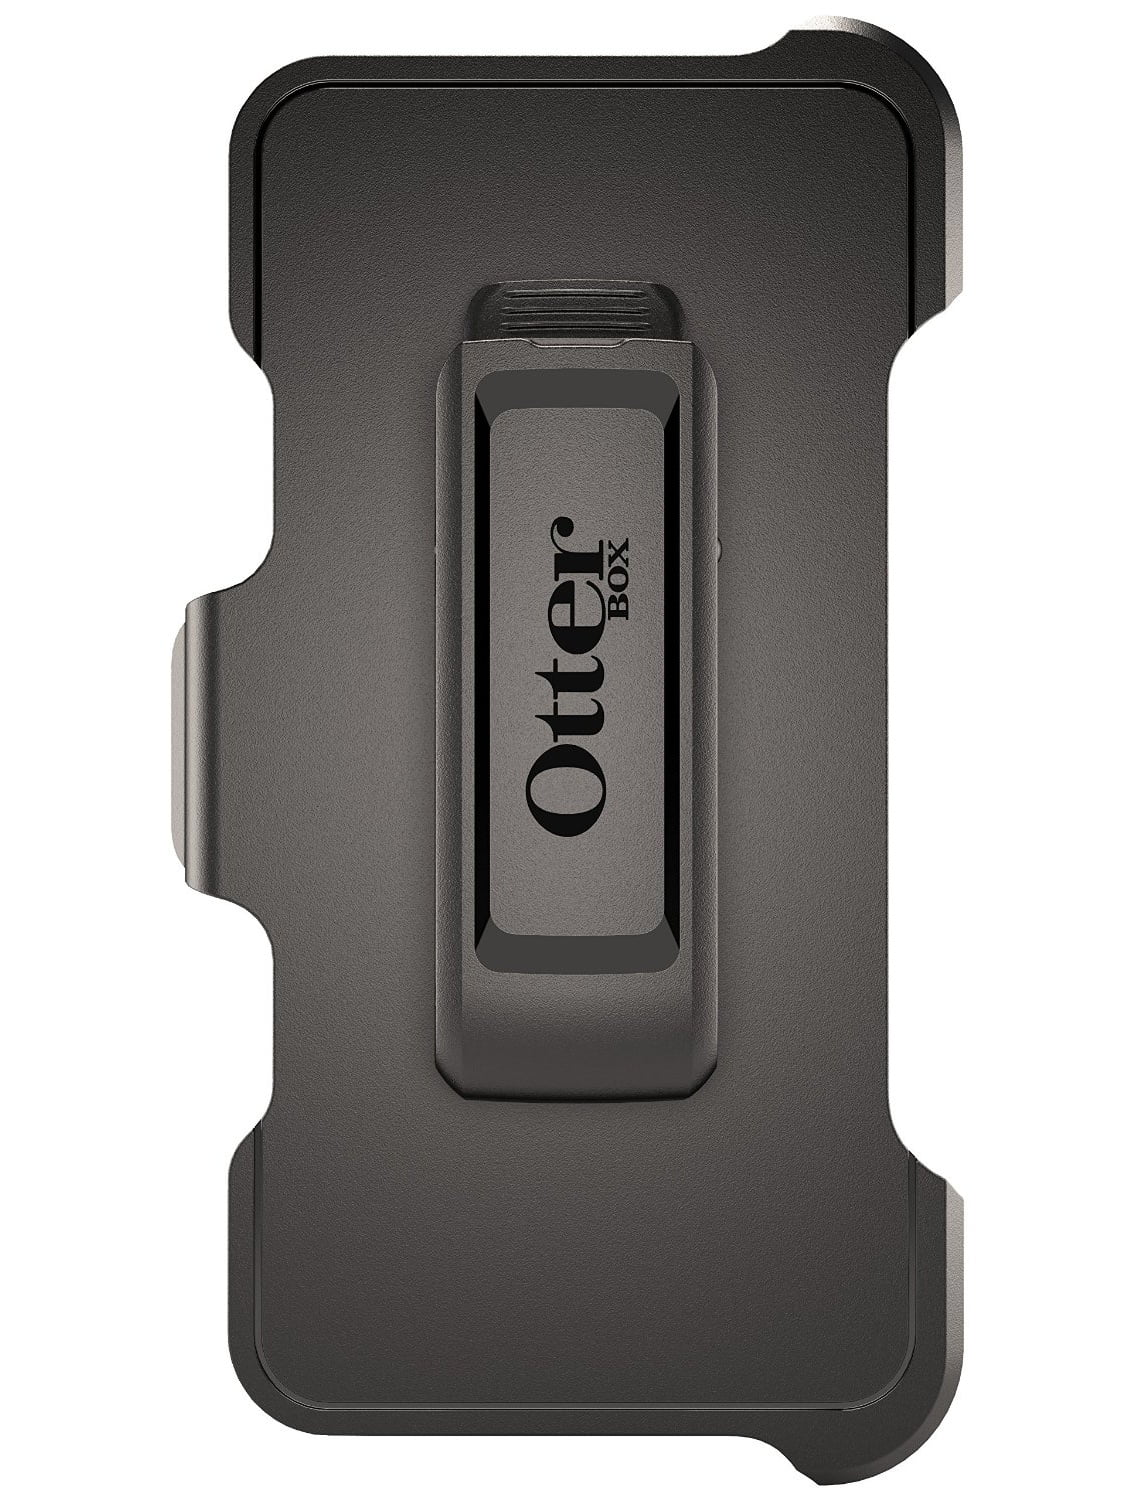 7d9ee6019 OtterBox Holster Belt Clip for OtterBox Defender Series Apple iPhone 6/6s  Case - Black - (Not Intended for Stand-Alone Use) - Walmart.com